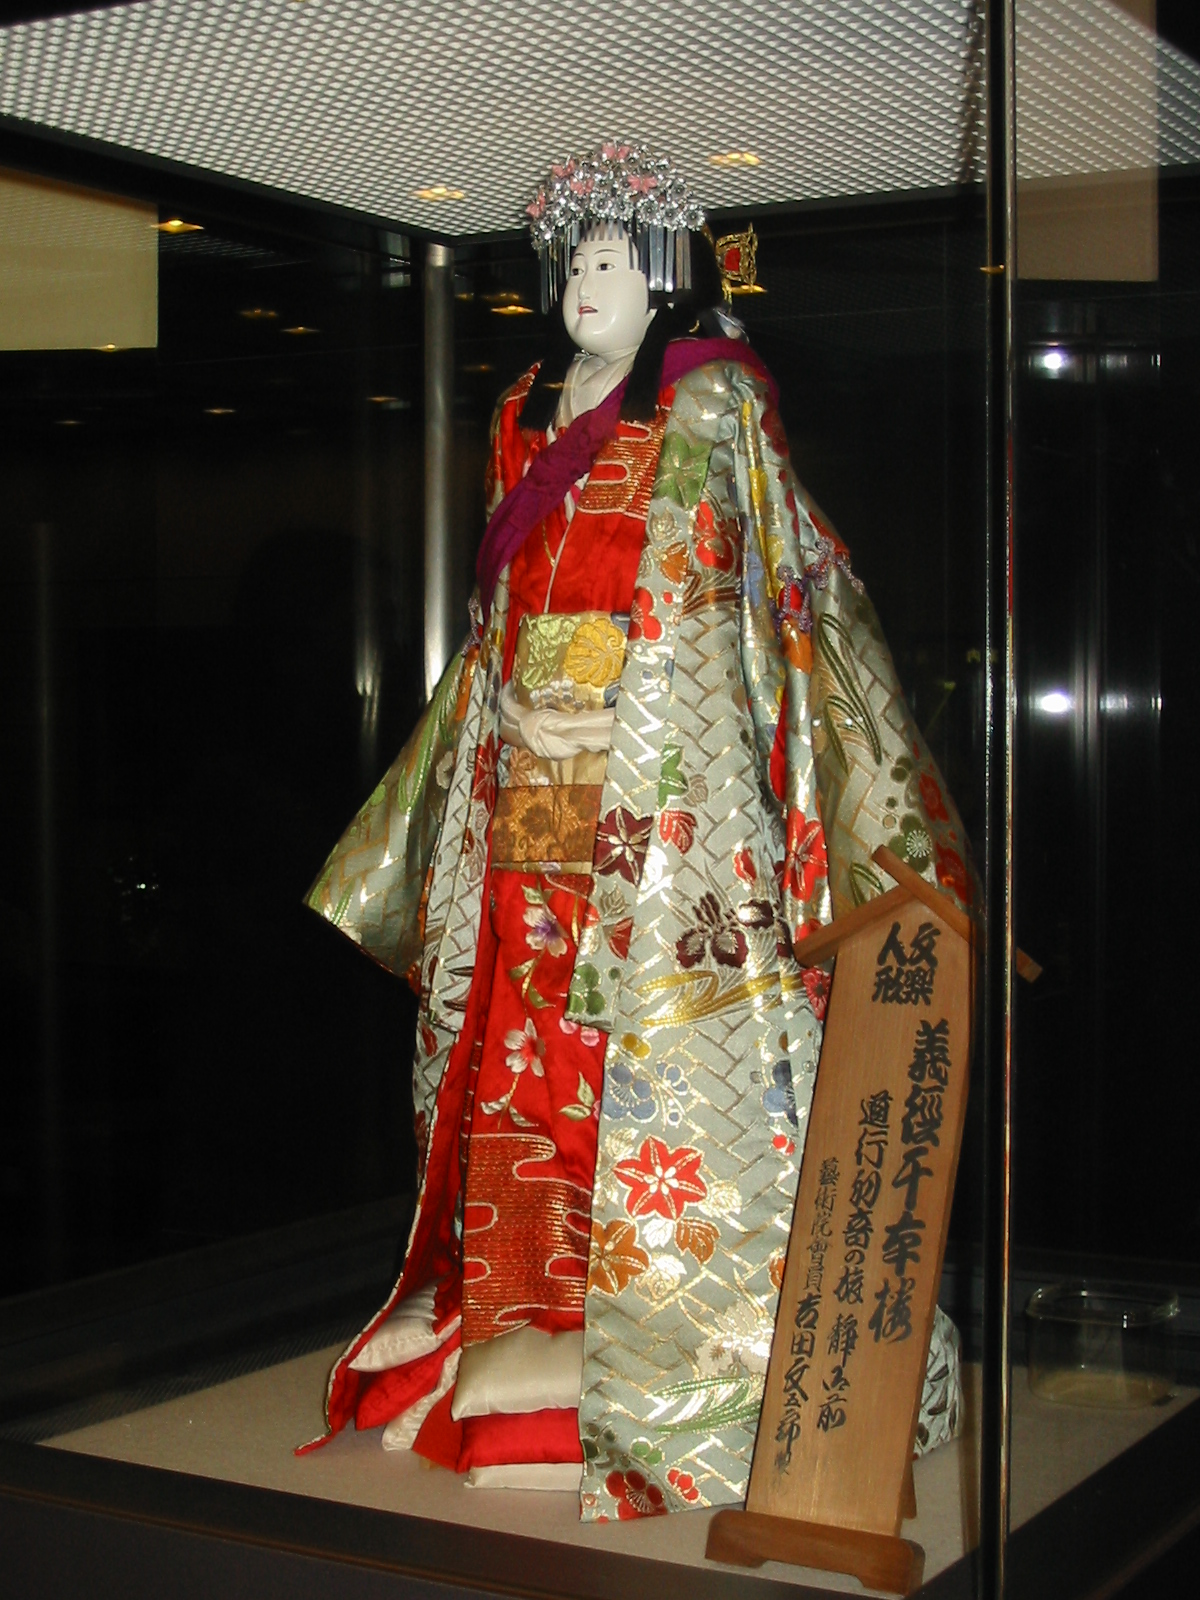 Bunraku The Traditional Puppet Theater Of Japan Yabai The Modern Vibrant Face Of Japan